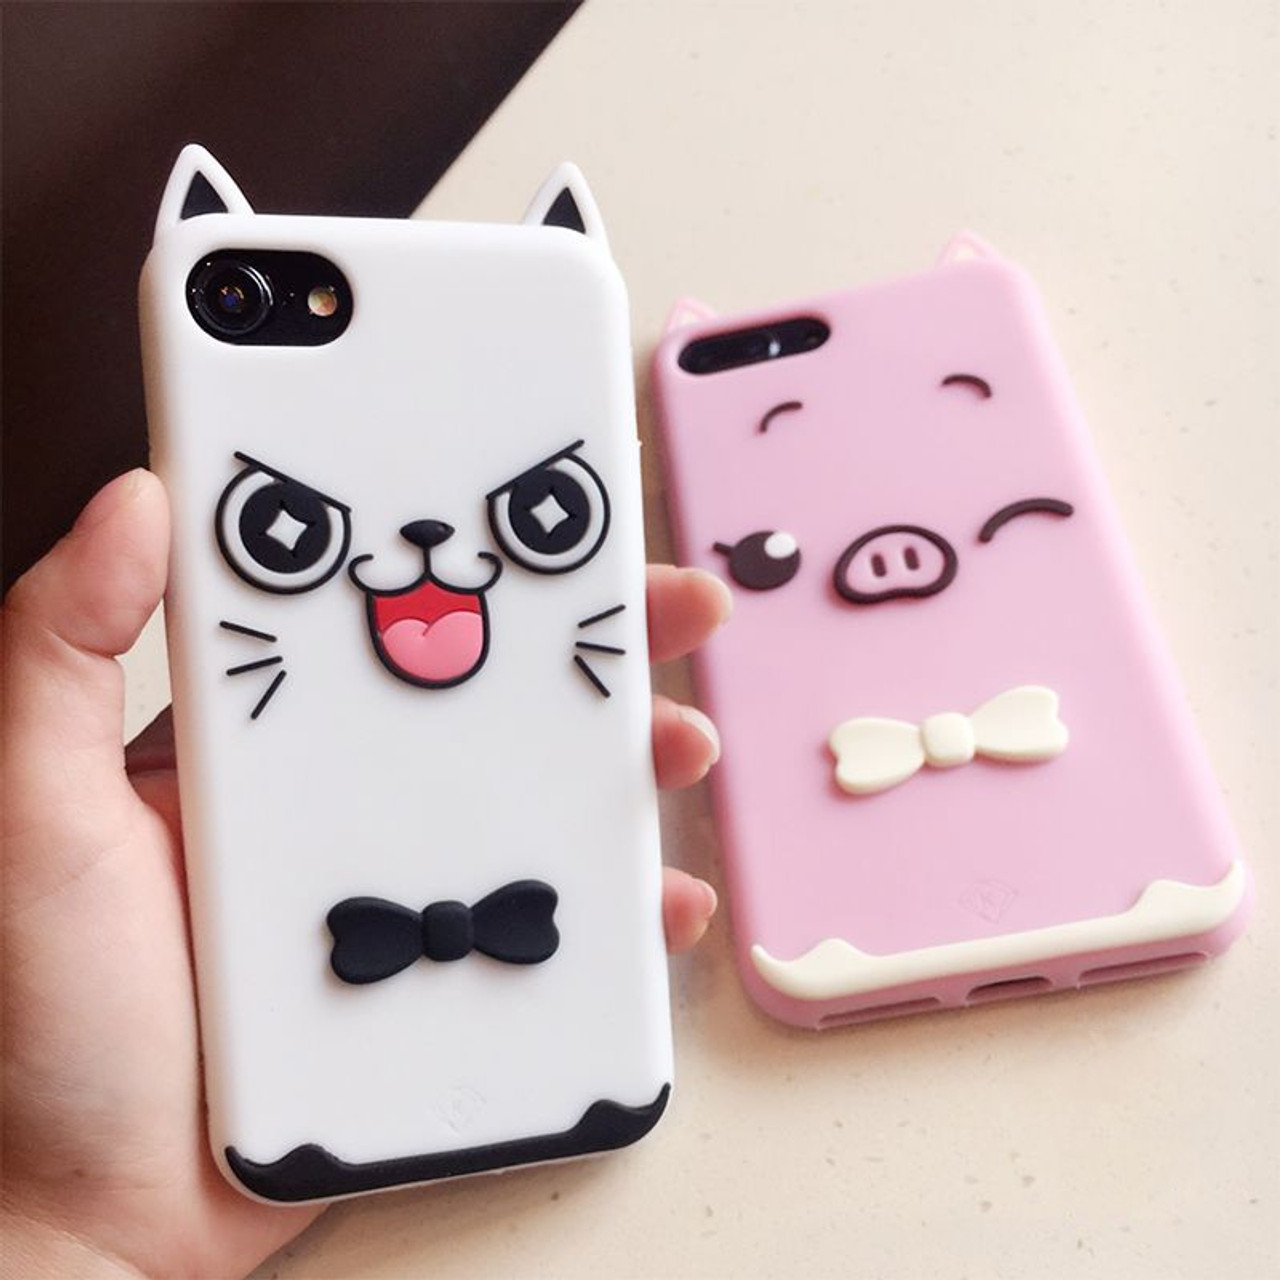 size 40 e7003 54538 3D Cartoon Soft Silicone Phone Case For iPhone 5S 6 6S 7 8 Plus X Cover  Mickey Judy Rabbit Smile Cat Tiger Stitch Unicorn Animal